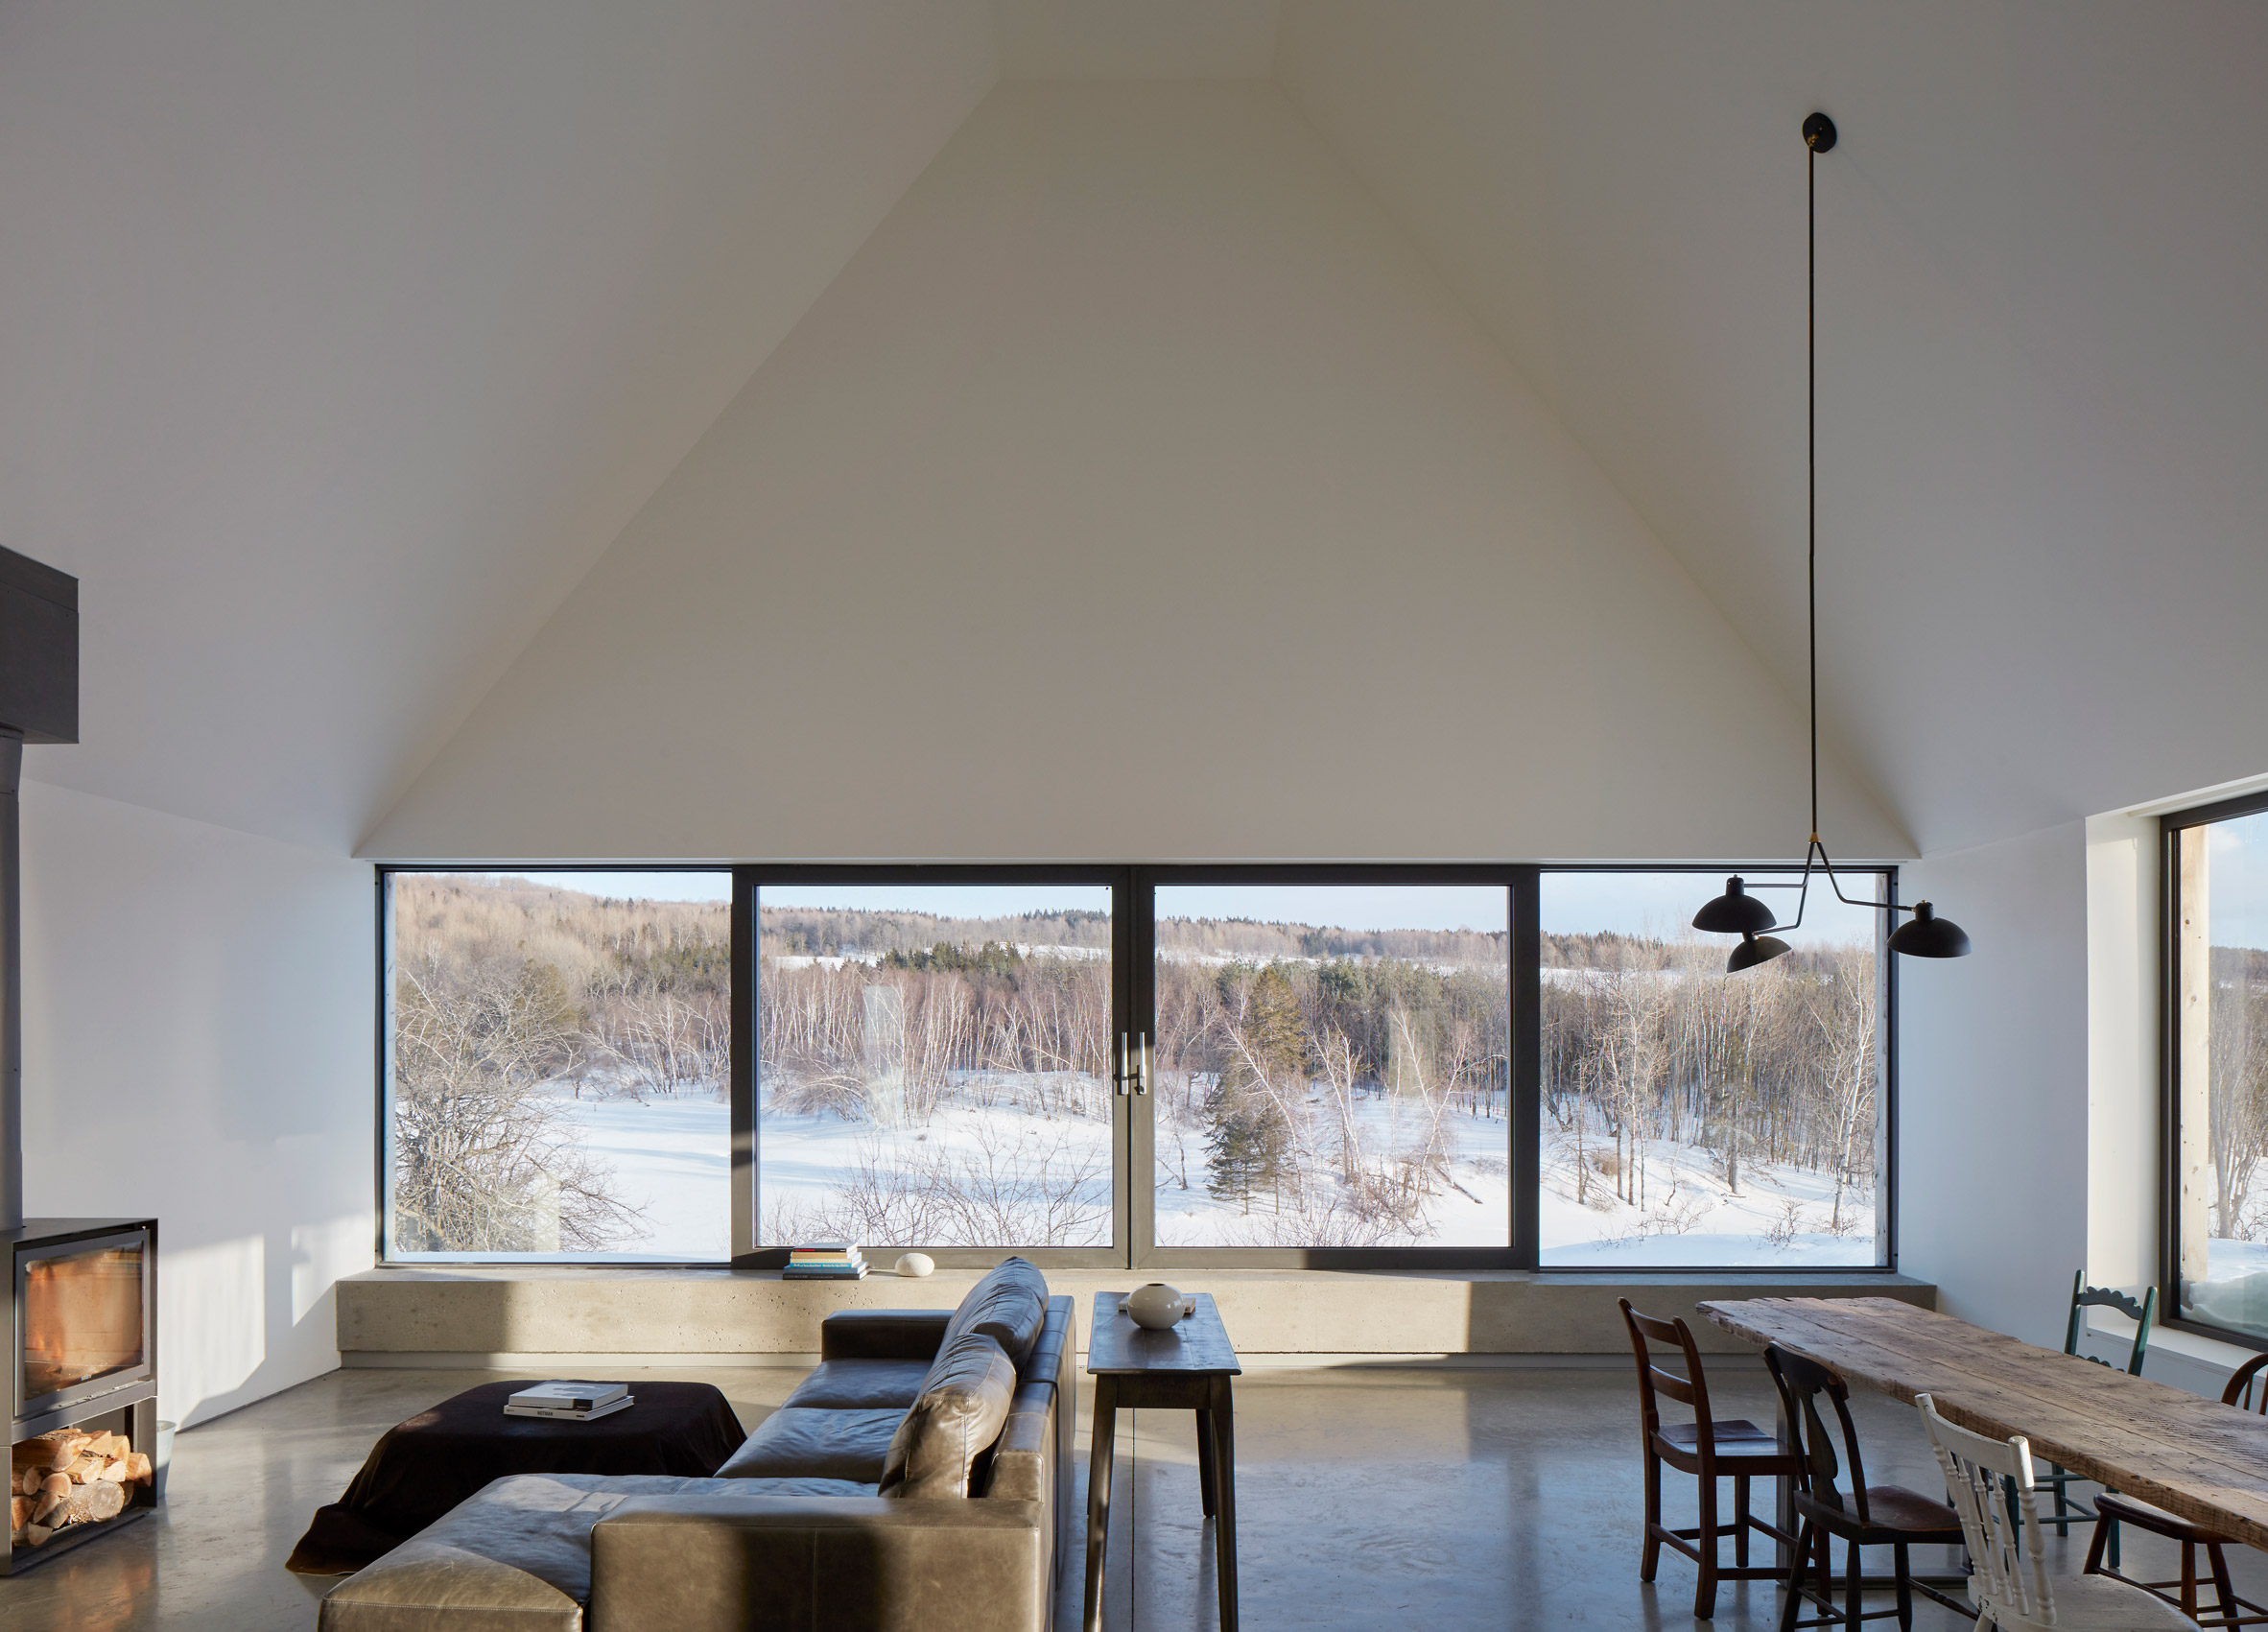 Hatley House Residence in Quebec, Canada by Pelletier De Fontenay